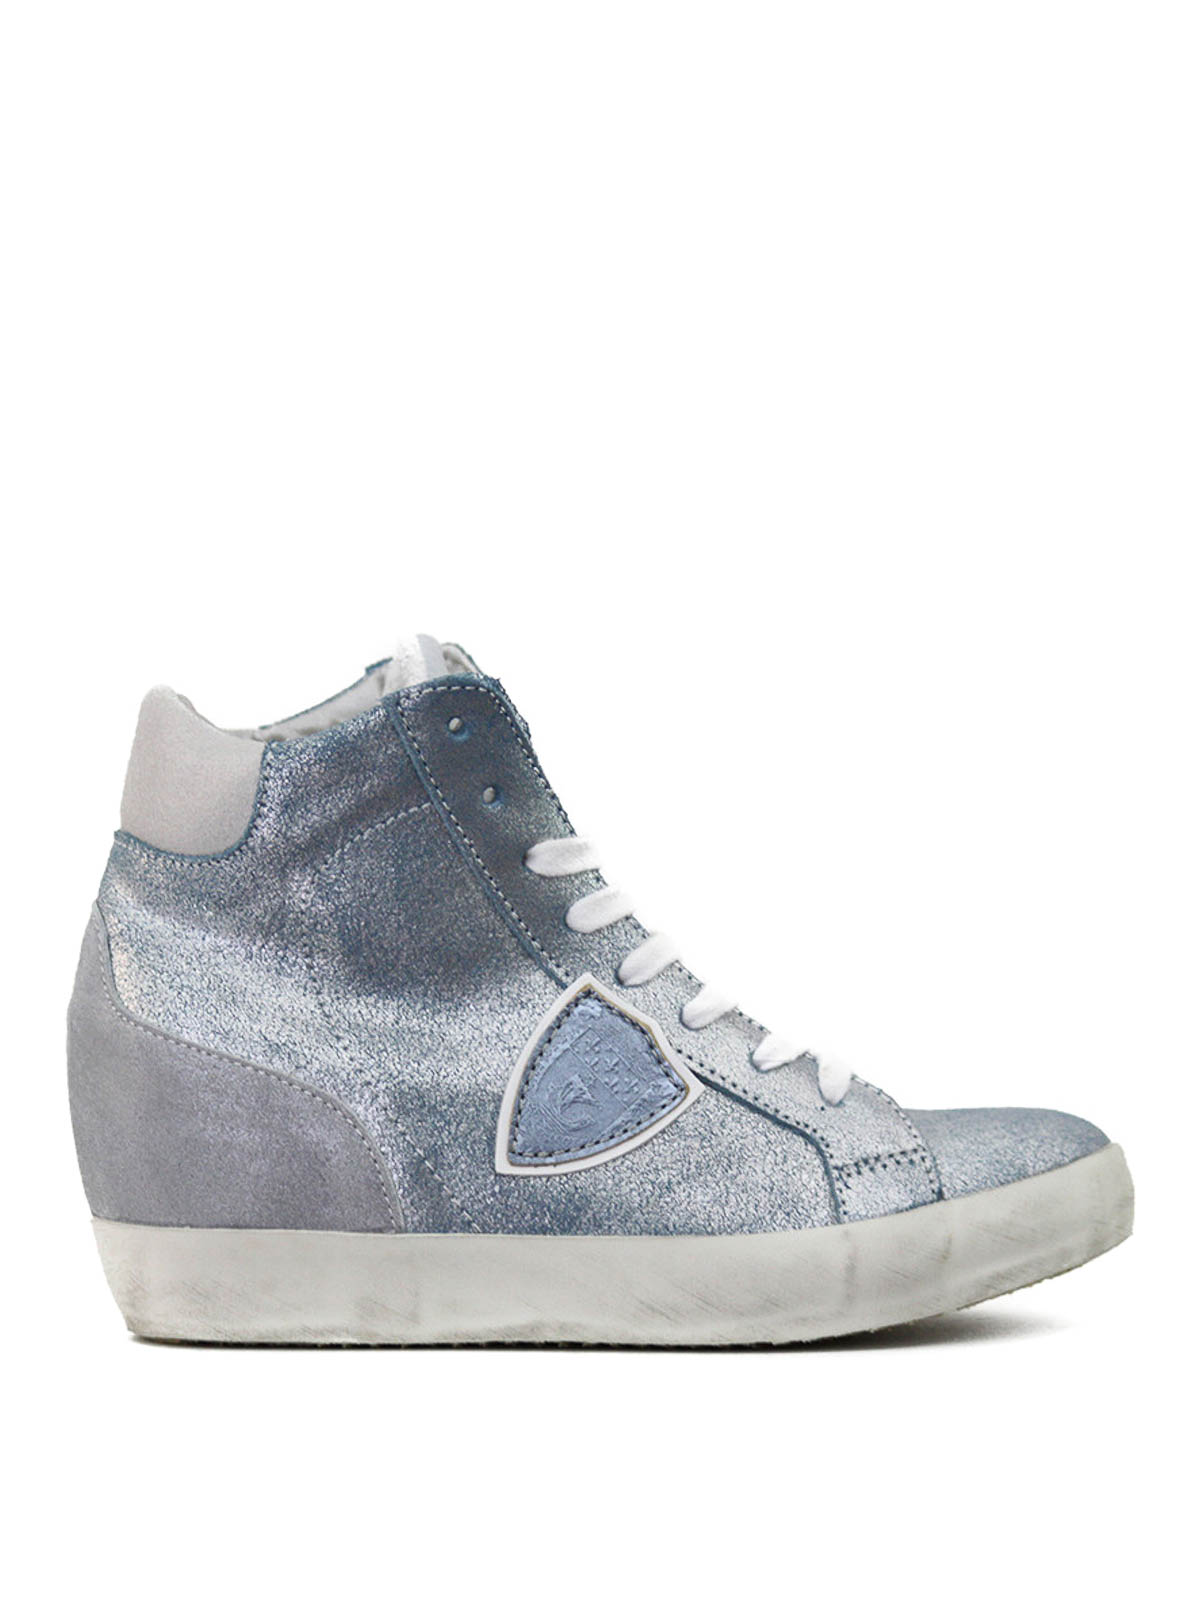 pian suede and glitter sneakers by philippe model trainers ikrix. Black Bedroom Furniture Sets. Home Design Ideas